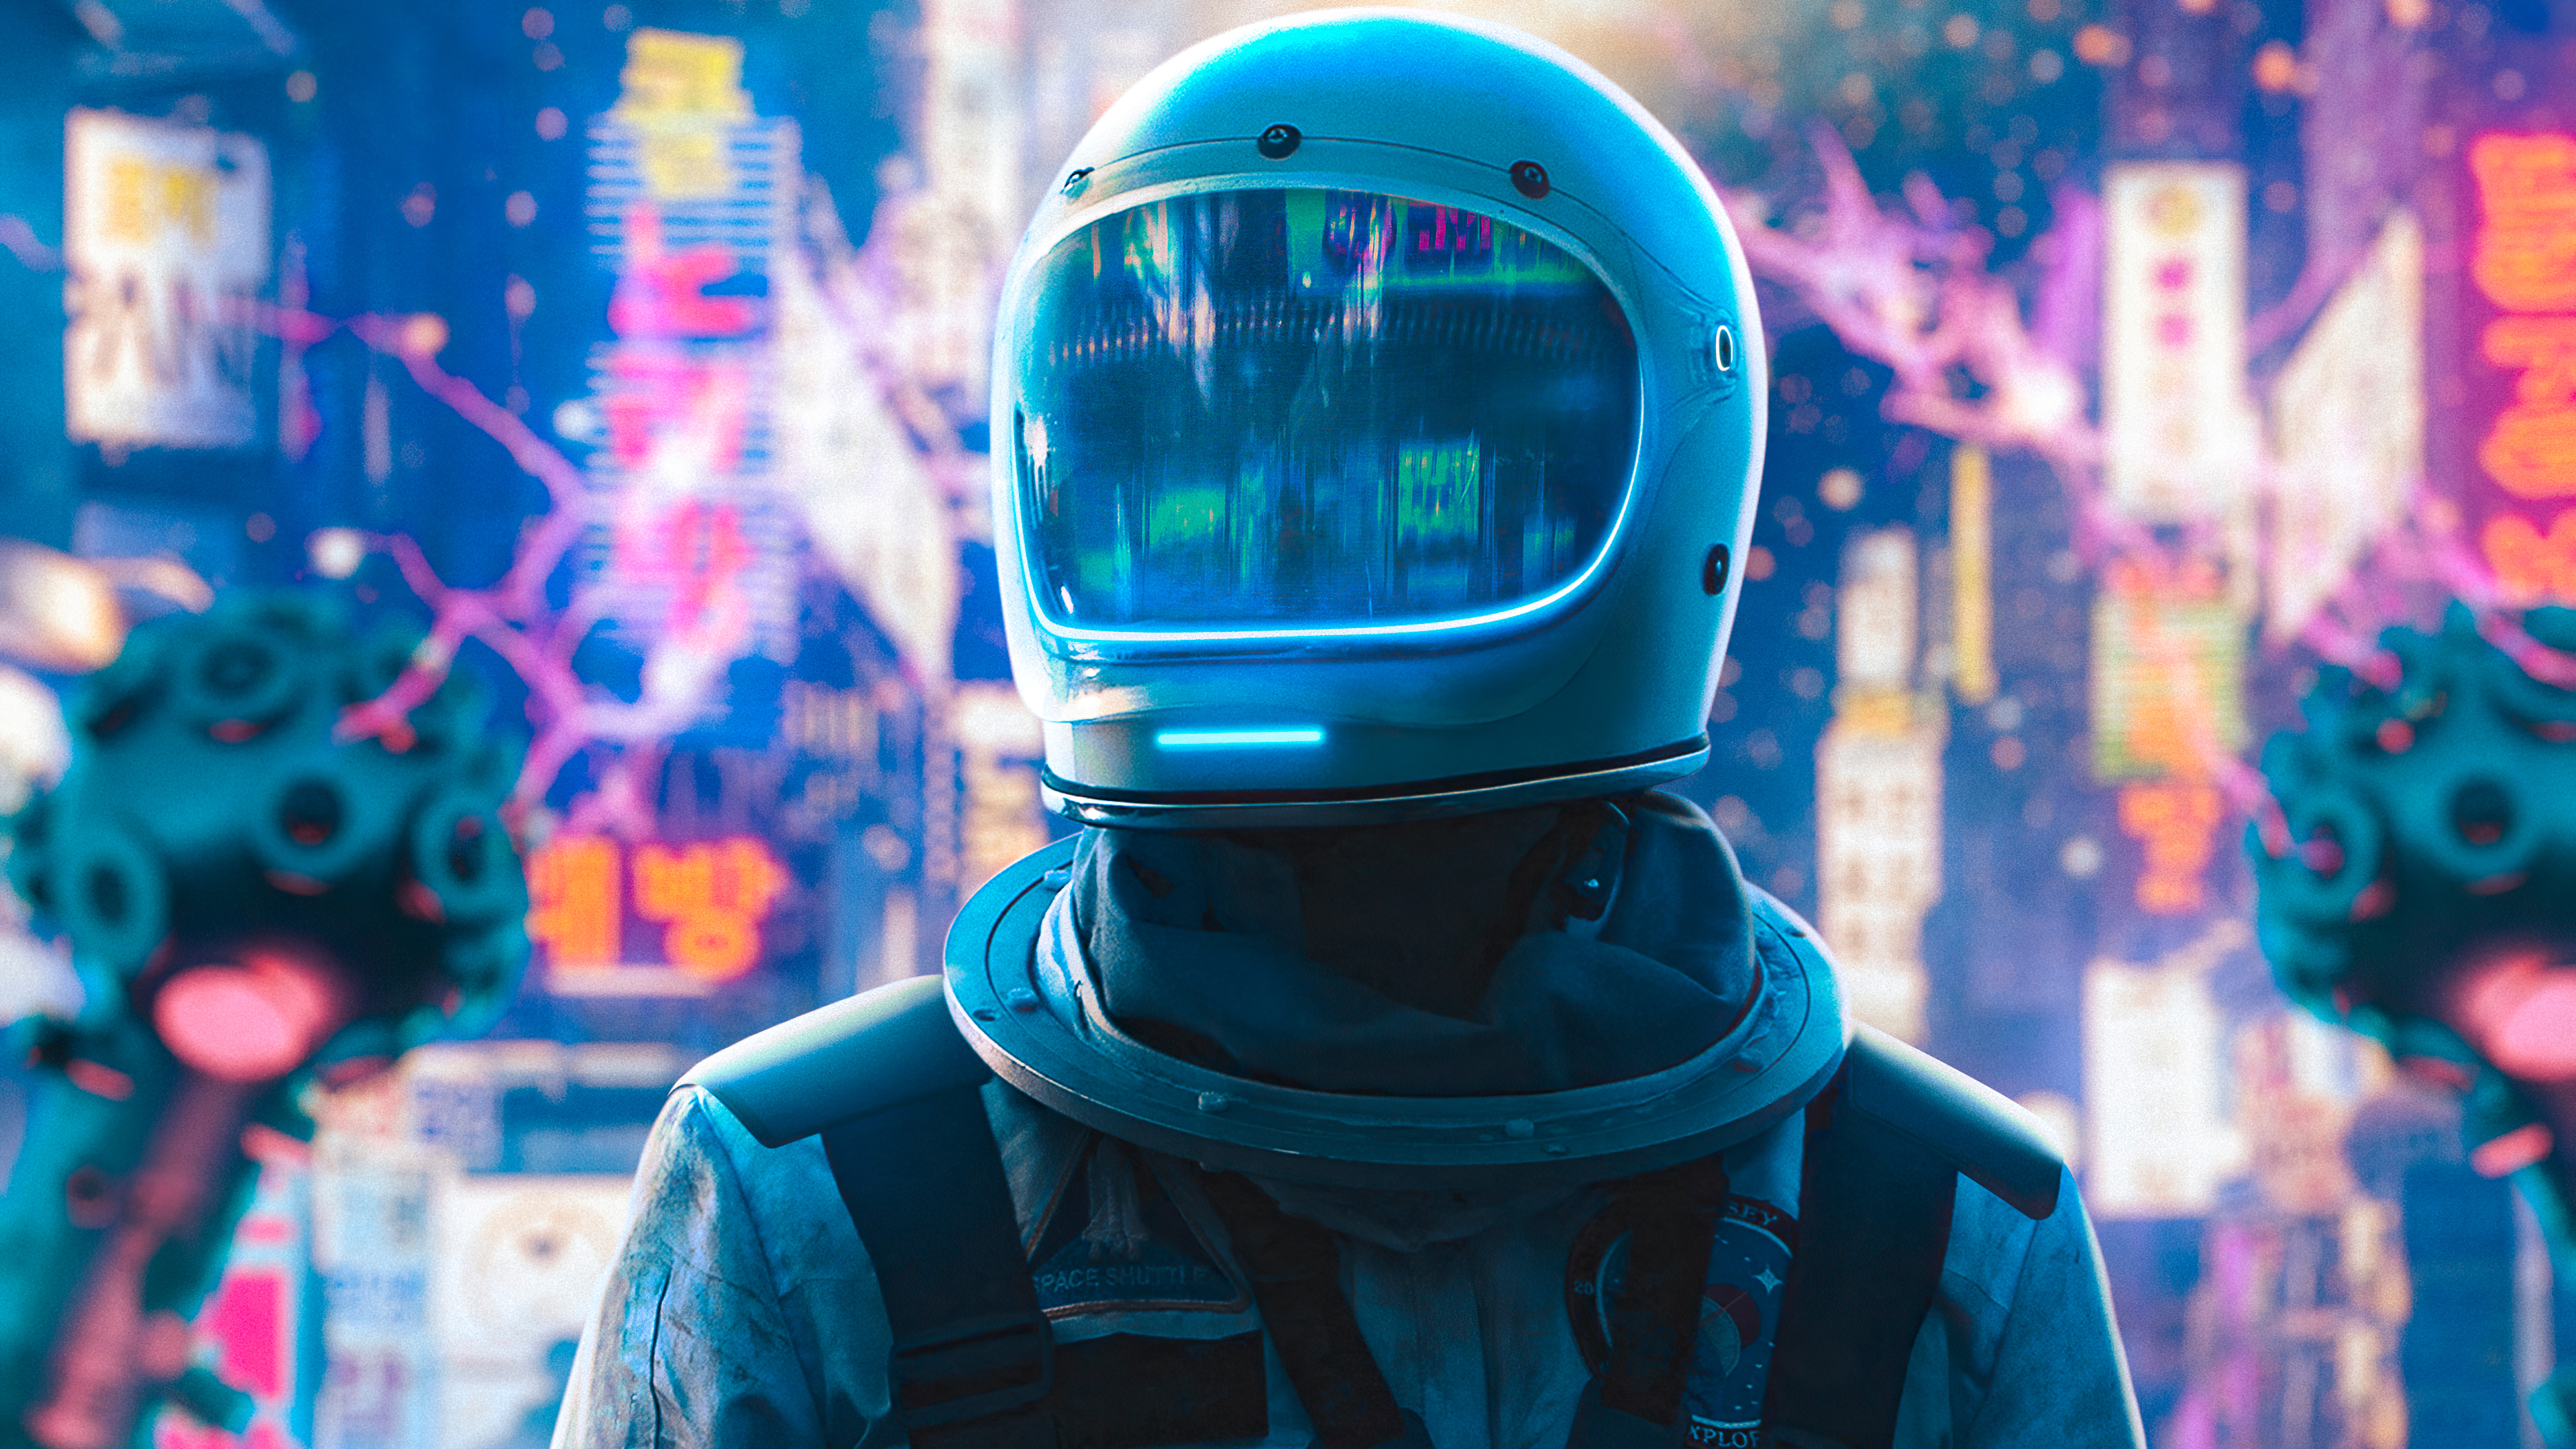 1366x768 Astronaut Alone In Neon City 4k 1366x768 Resolution Hd 4k Wallpapers Images Backgrounds Photos And Pictures